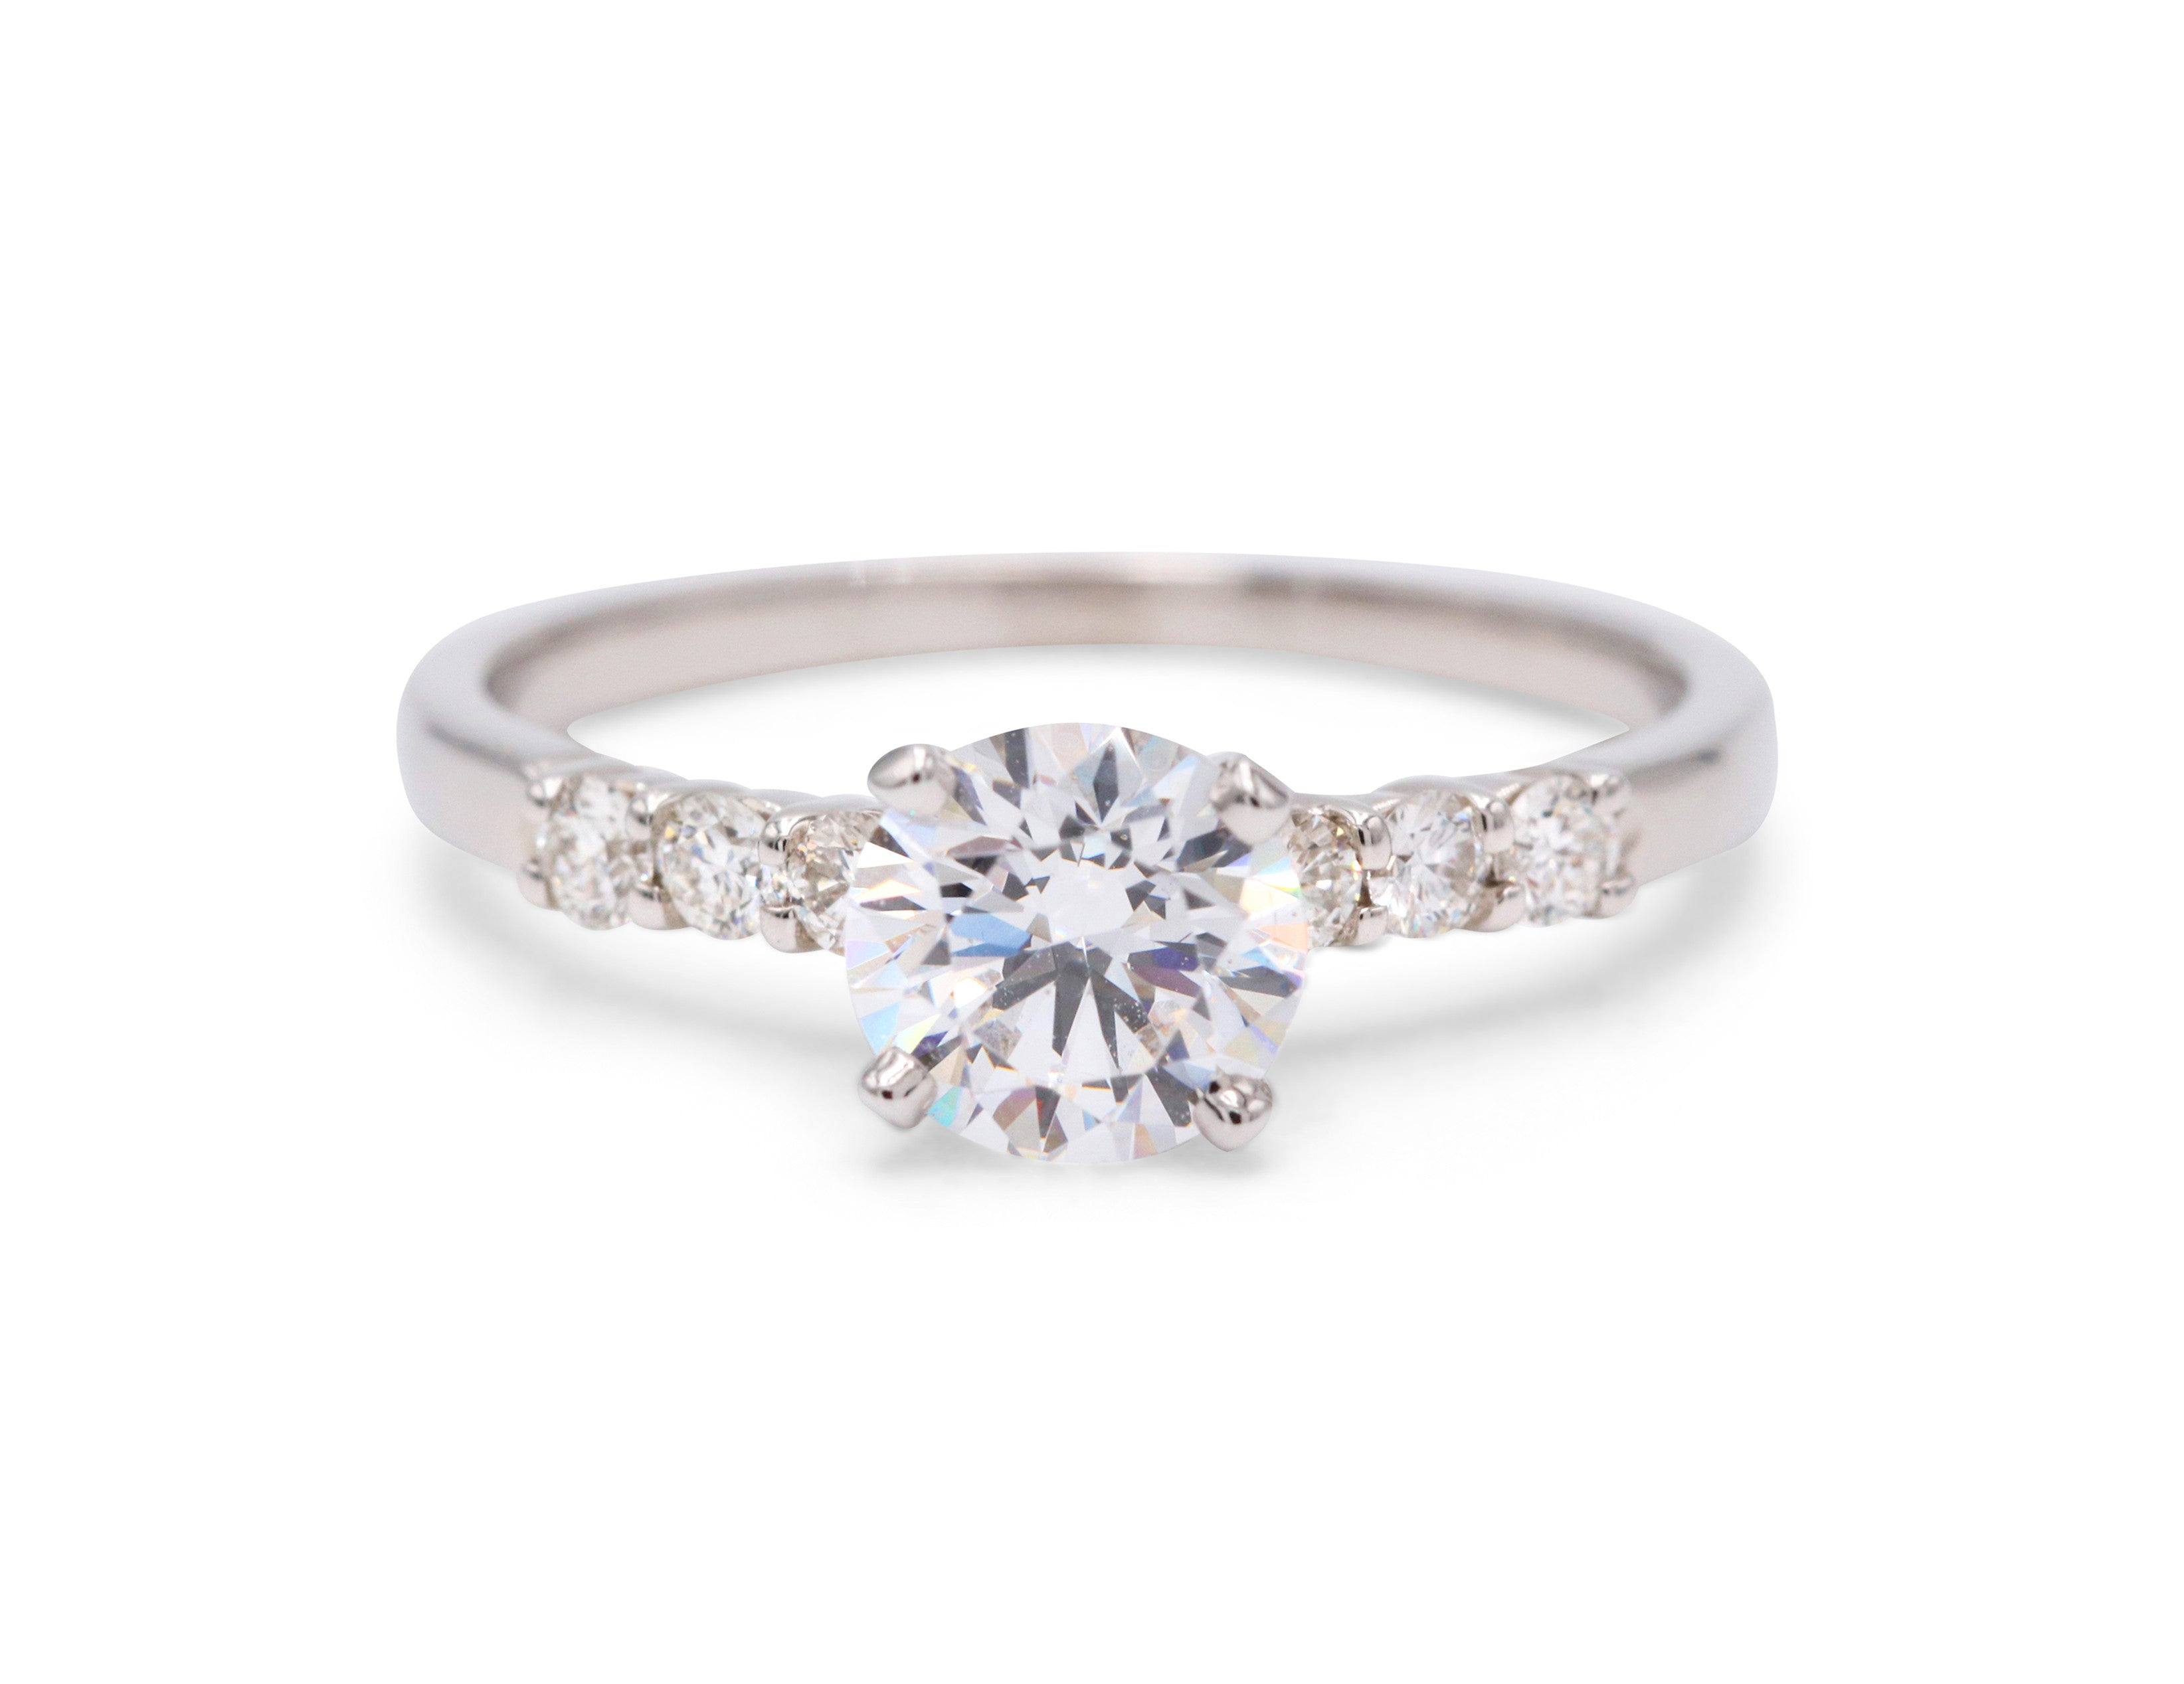 jewellery com ms madison ring junikerjewelry engagement solitaire band